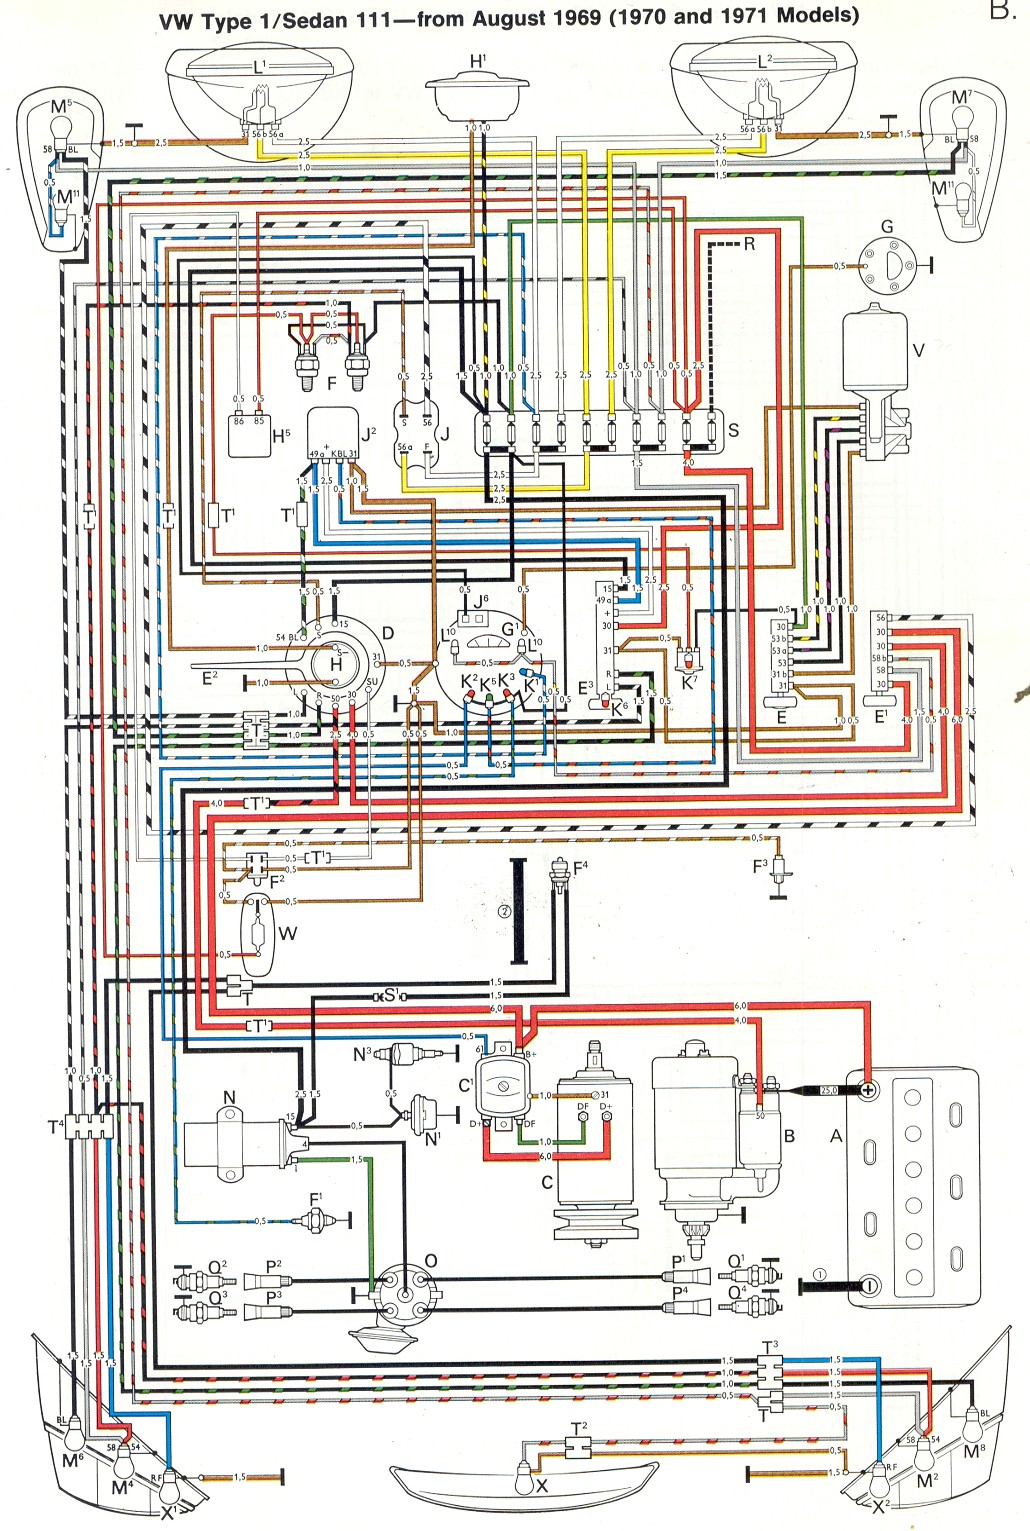 Wiring Diagram As Well Vw Beetle Fuse Box Diagram On 71 Vw Bus Fuse